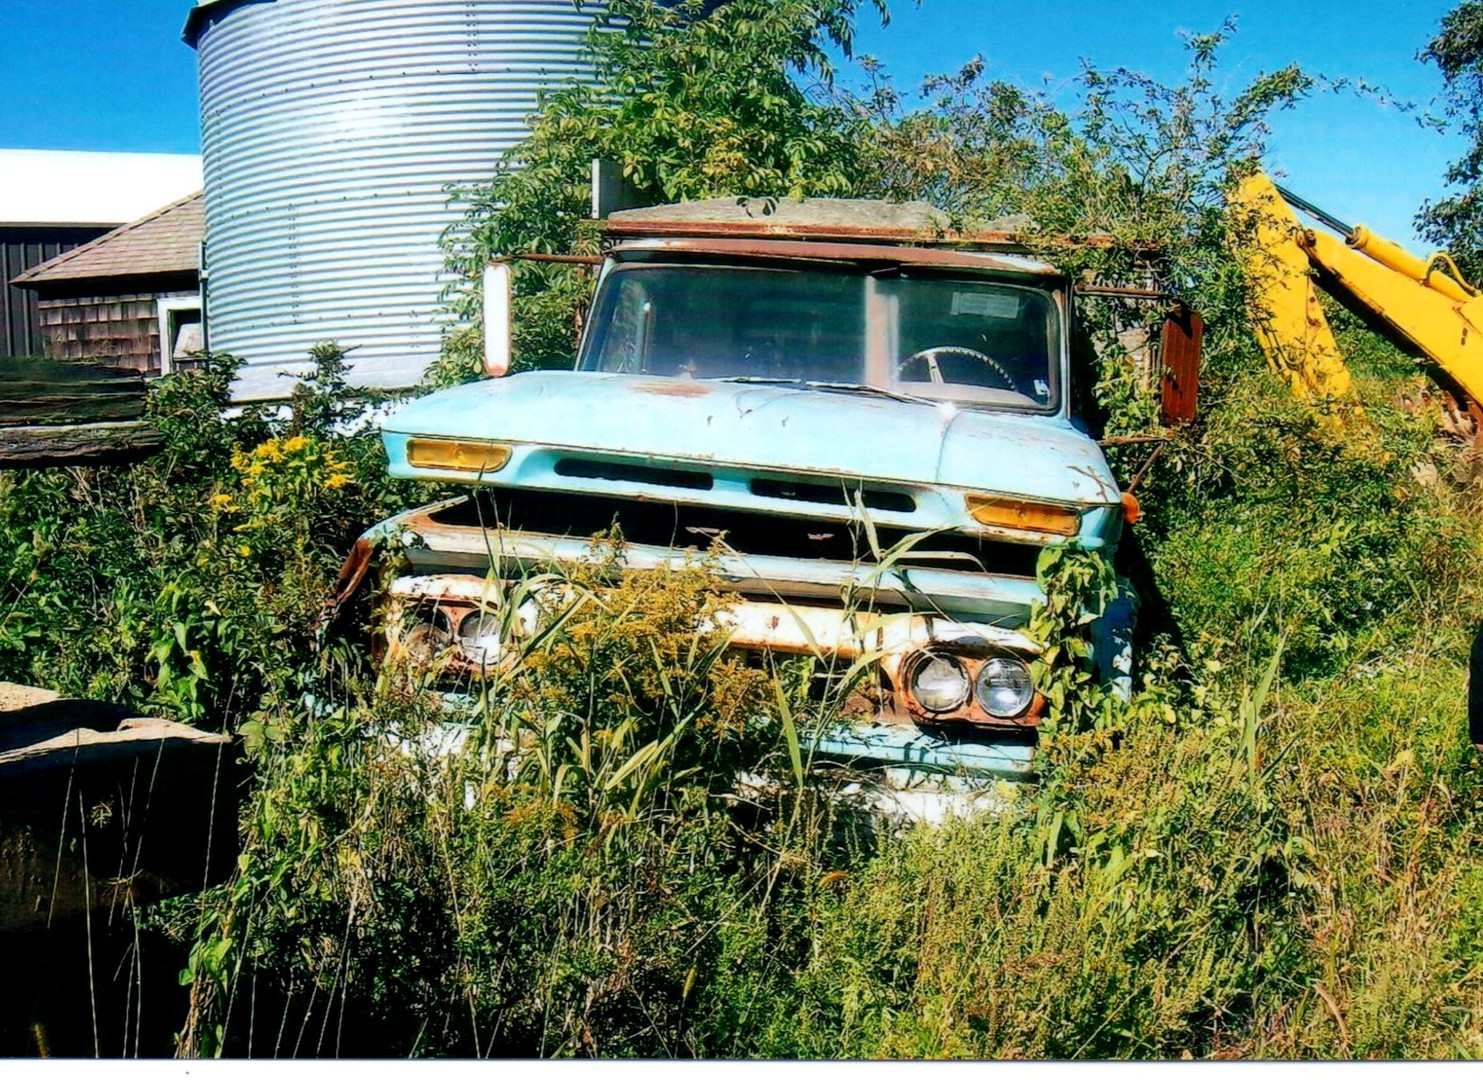 1963-66 GMC in the weeds